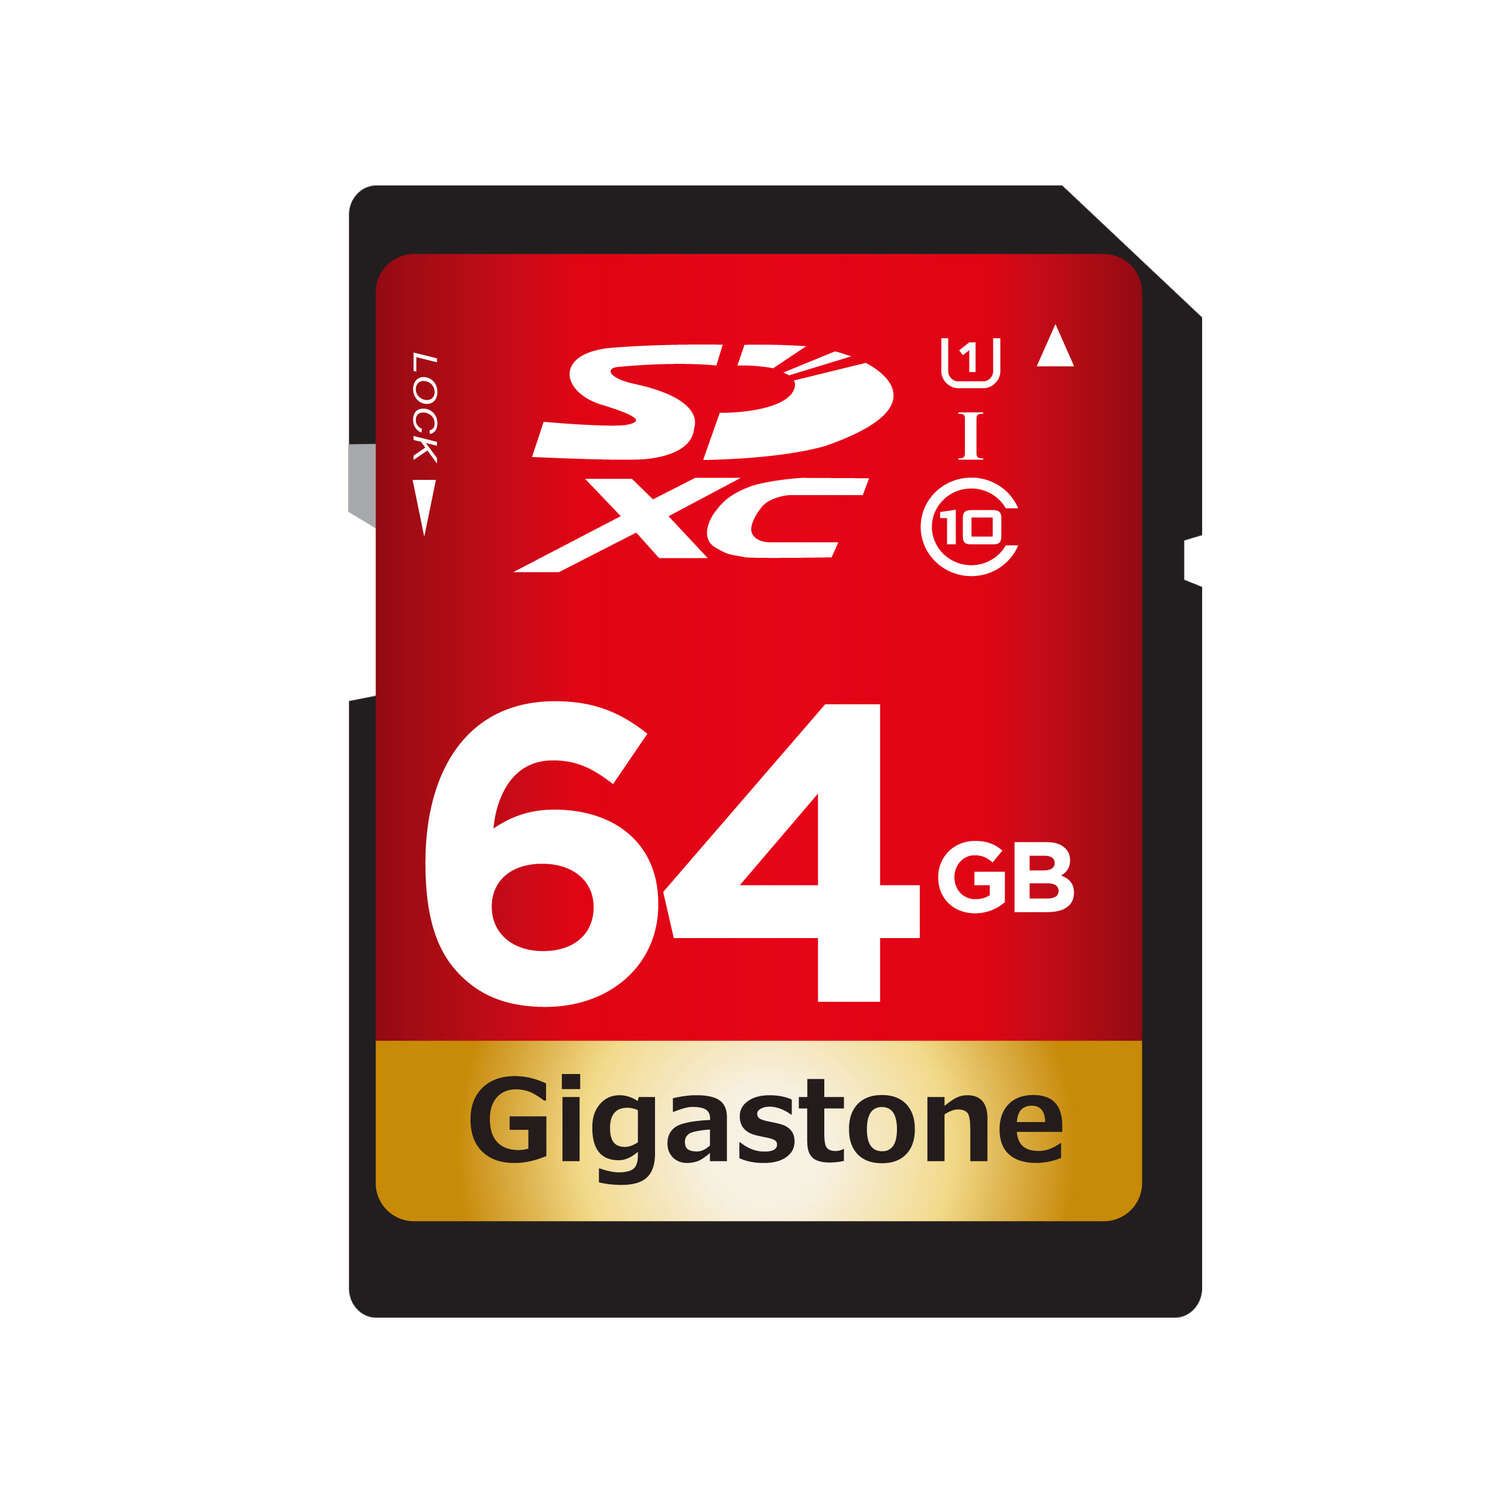 Gigastone  64 gigabyte SD Flash Memory Card  1 pk